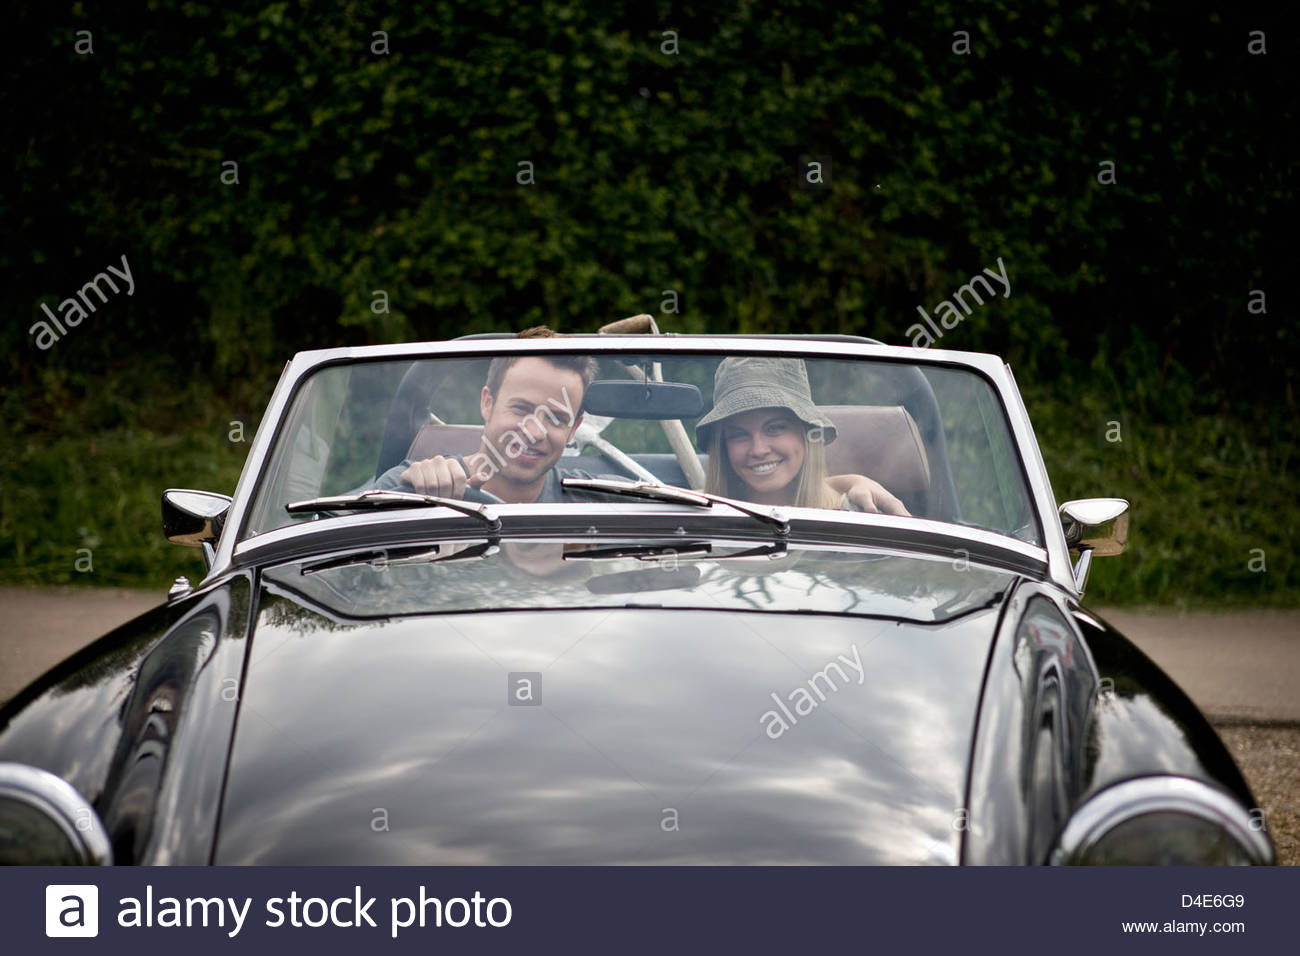 A young couple driving a black sports car with gardening tools in the back - Stock Image